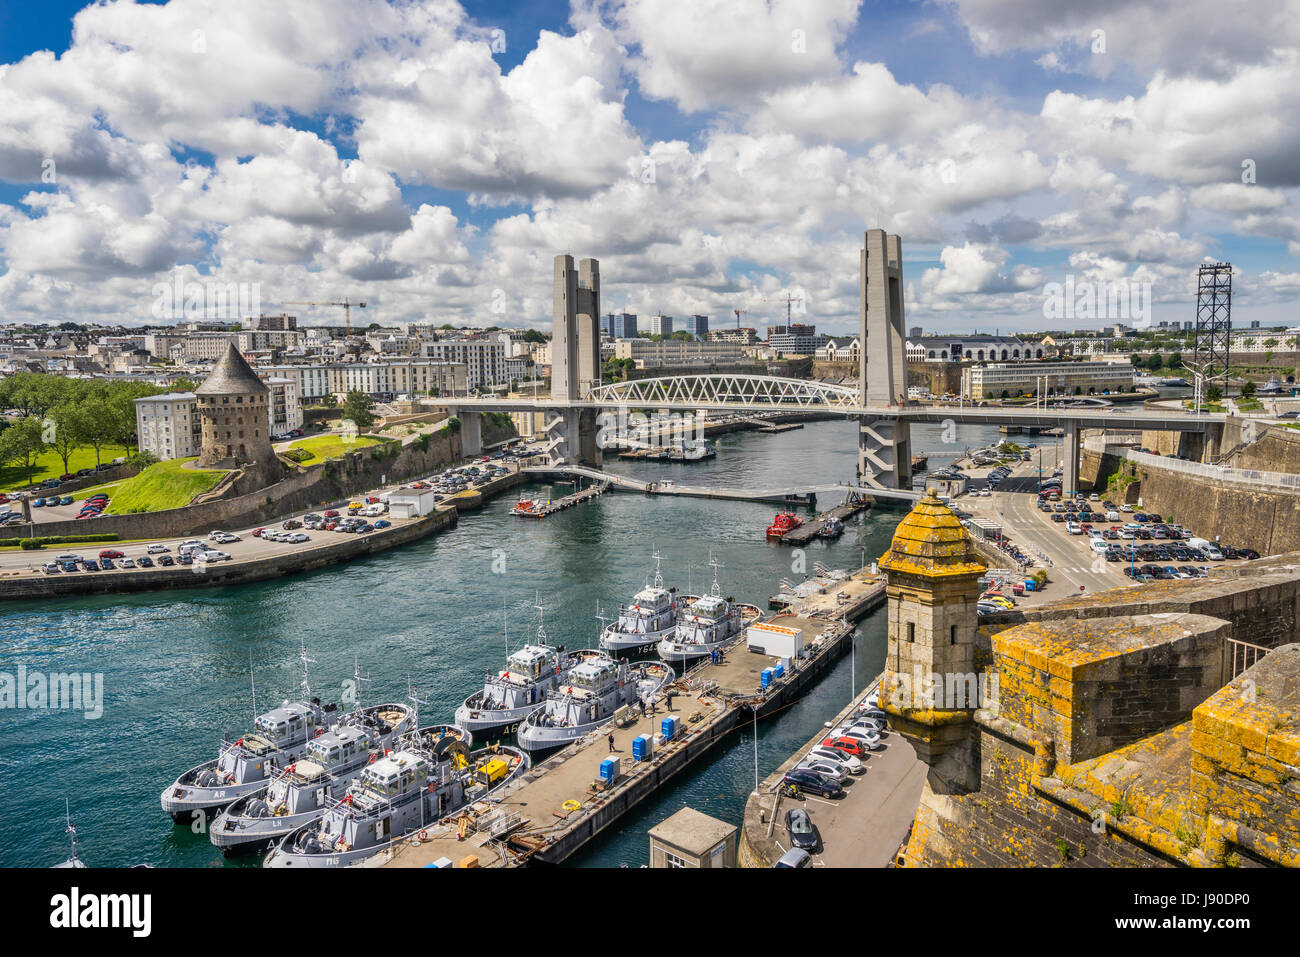 France, Brittany, Finistére department, Brest, the battlements of Chateau de Brest with view of Penfeld River, - Stock Image